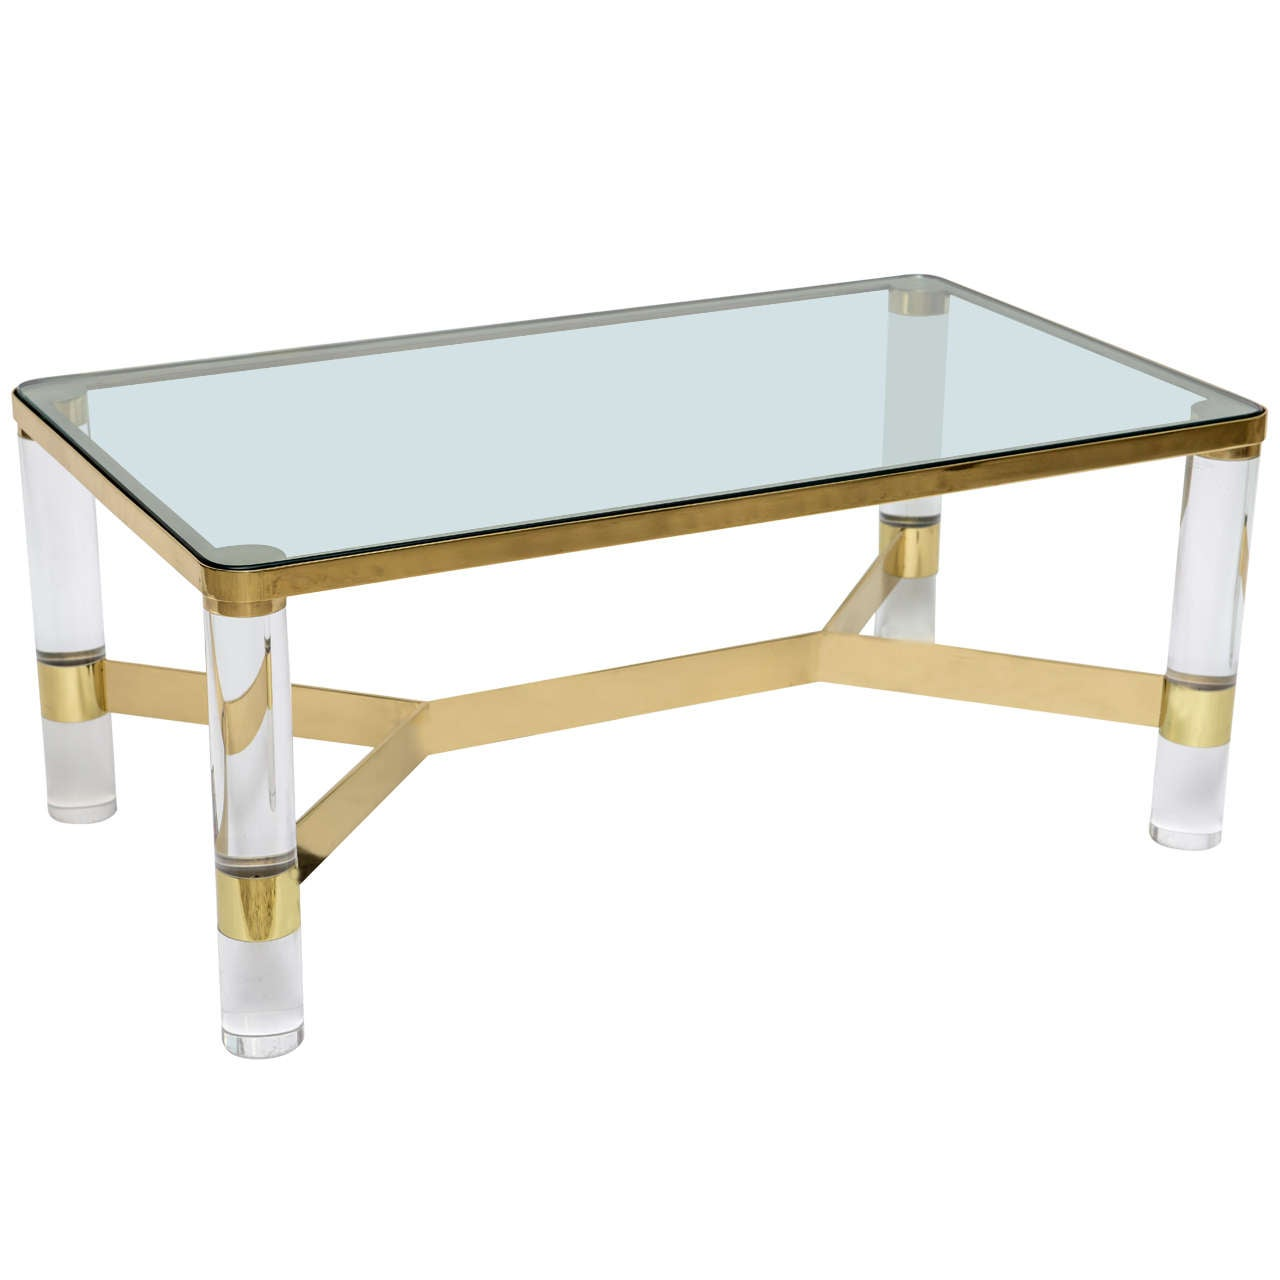 Signed karl springer lucite and polished bronze coffee table for sale at 1stdibs Bronze coffee tables